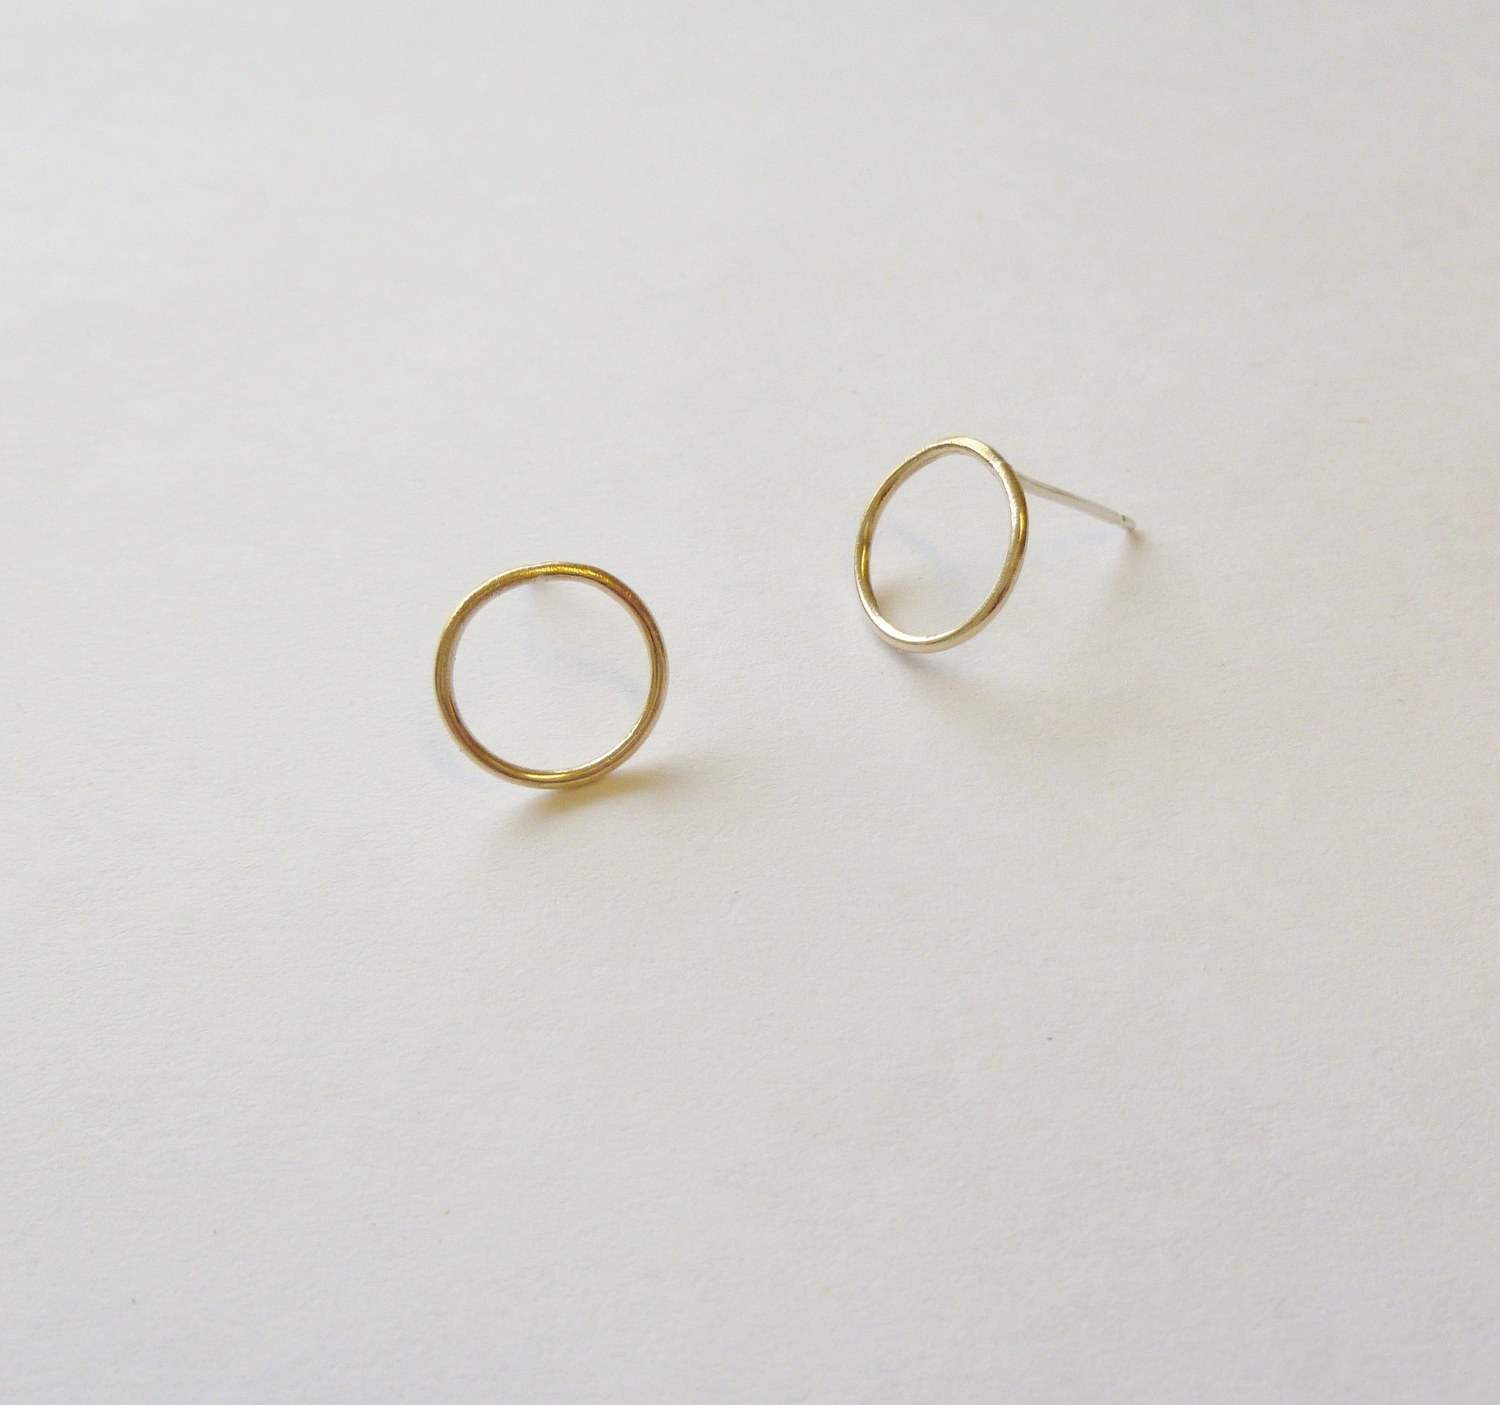 2.Gold Circle Earrings - Hand-formed 24ct Gold plated earrings. Beautifully simple circle earrings. Ideal for the minimalist lover.£25